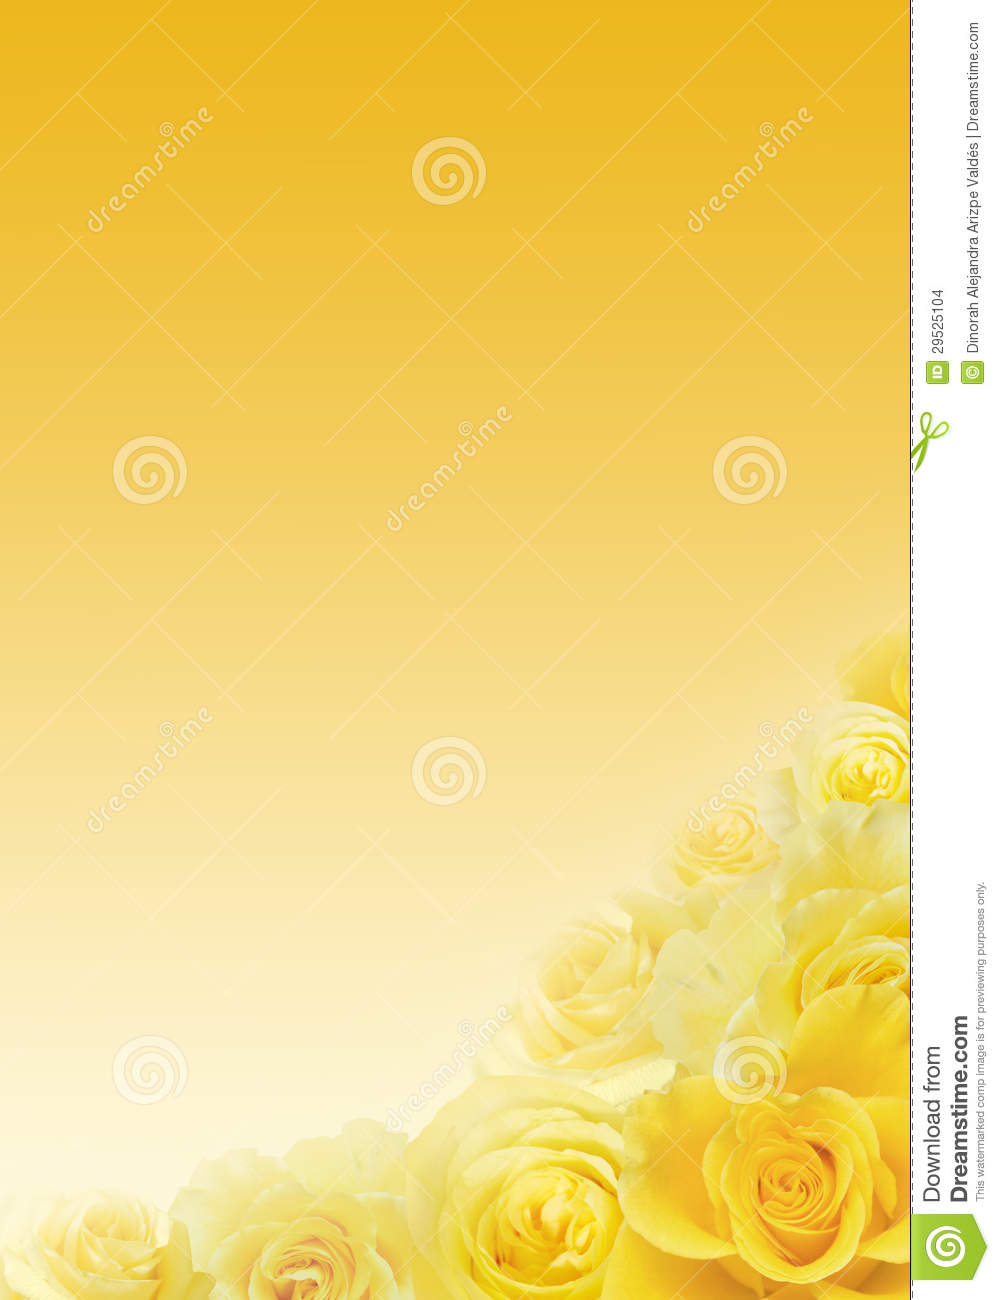 Sweet yellow roses on faded yellow background.